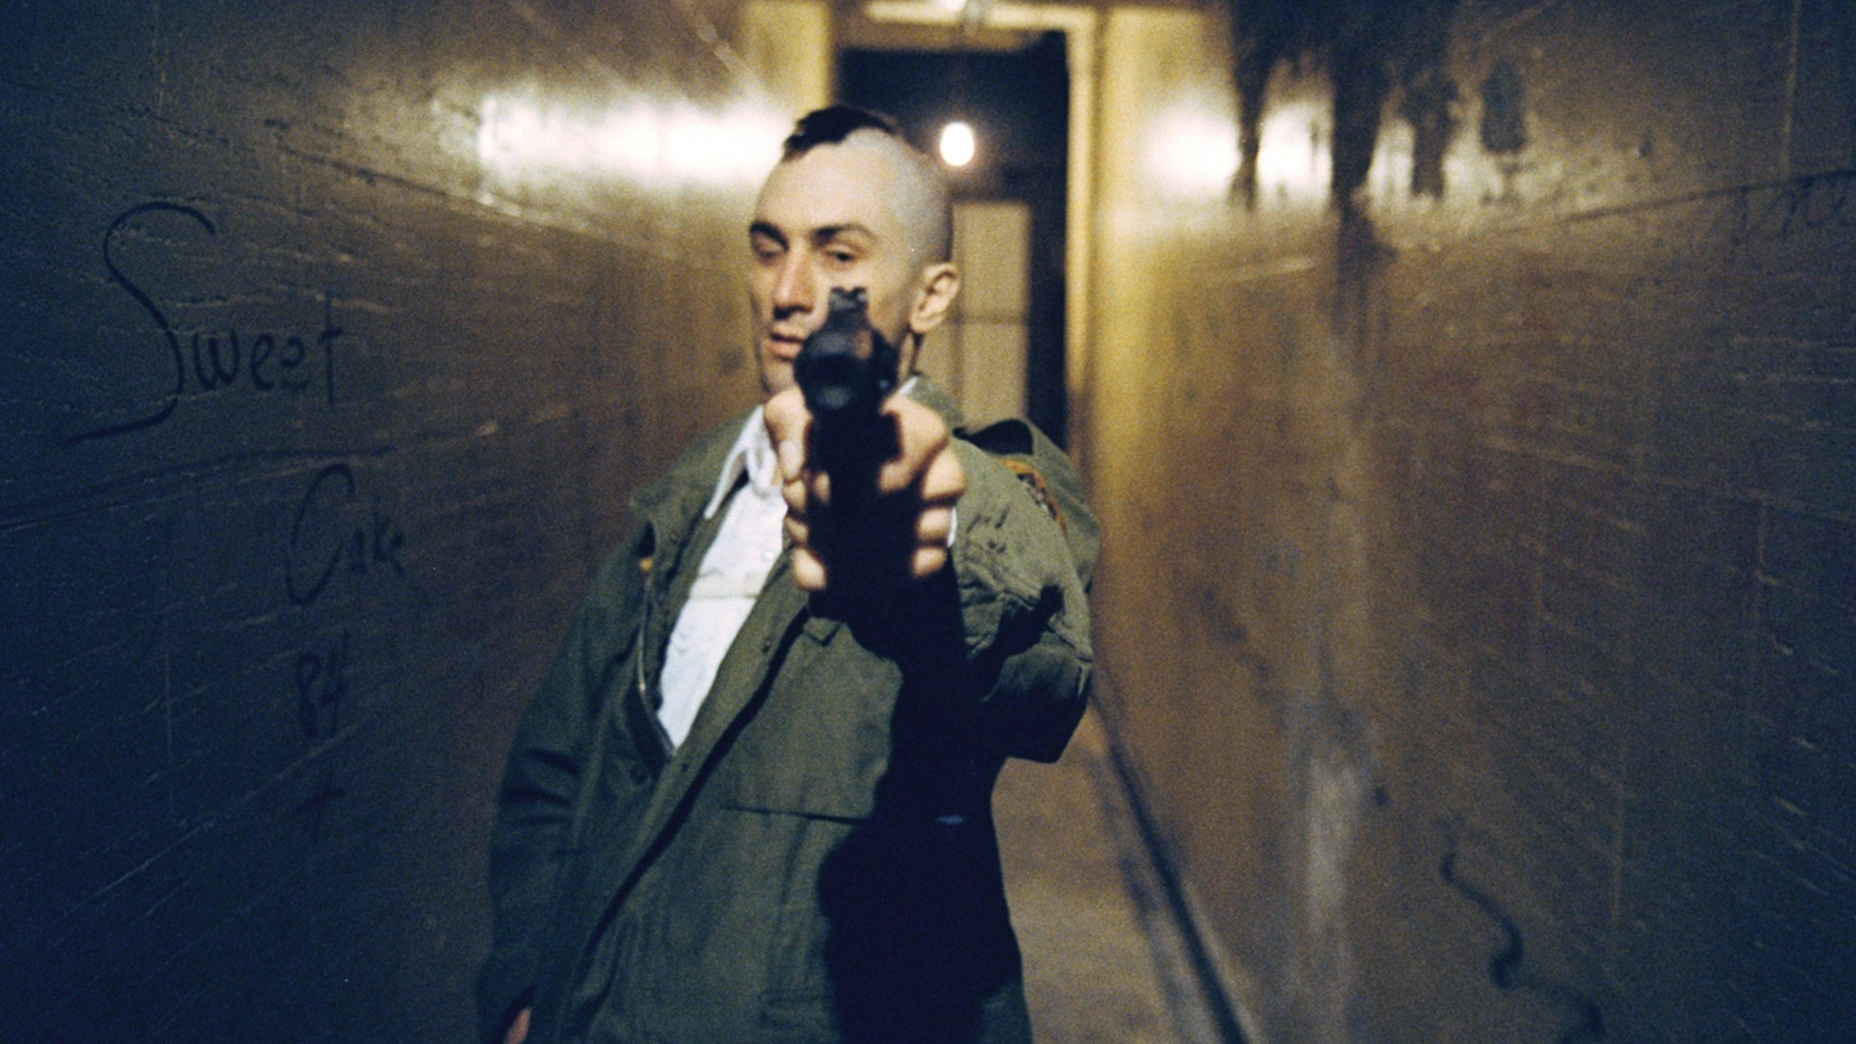 Taxi Driver (1976) - Directed by: Martin ScorseseWritten by: Paul Schrader